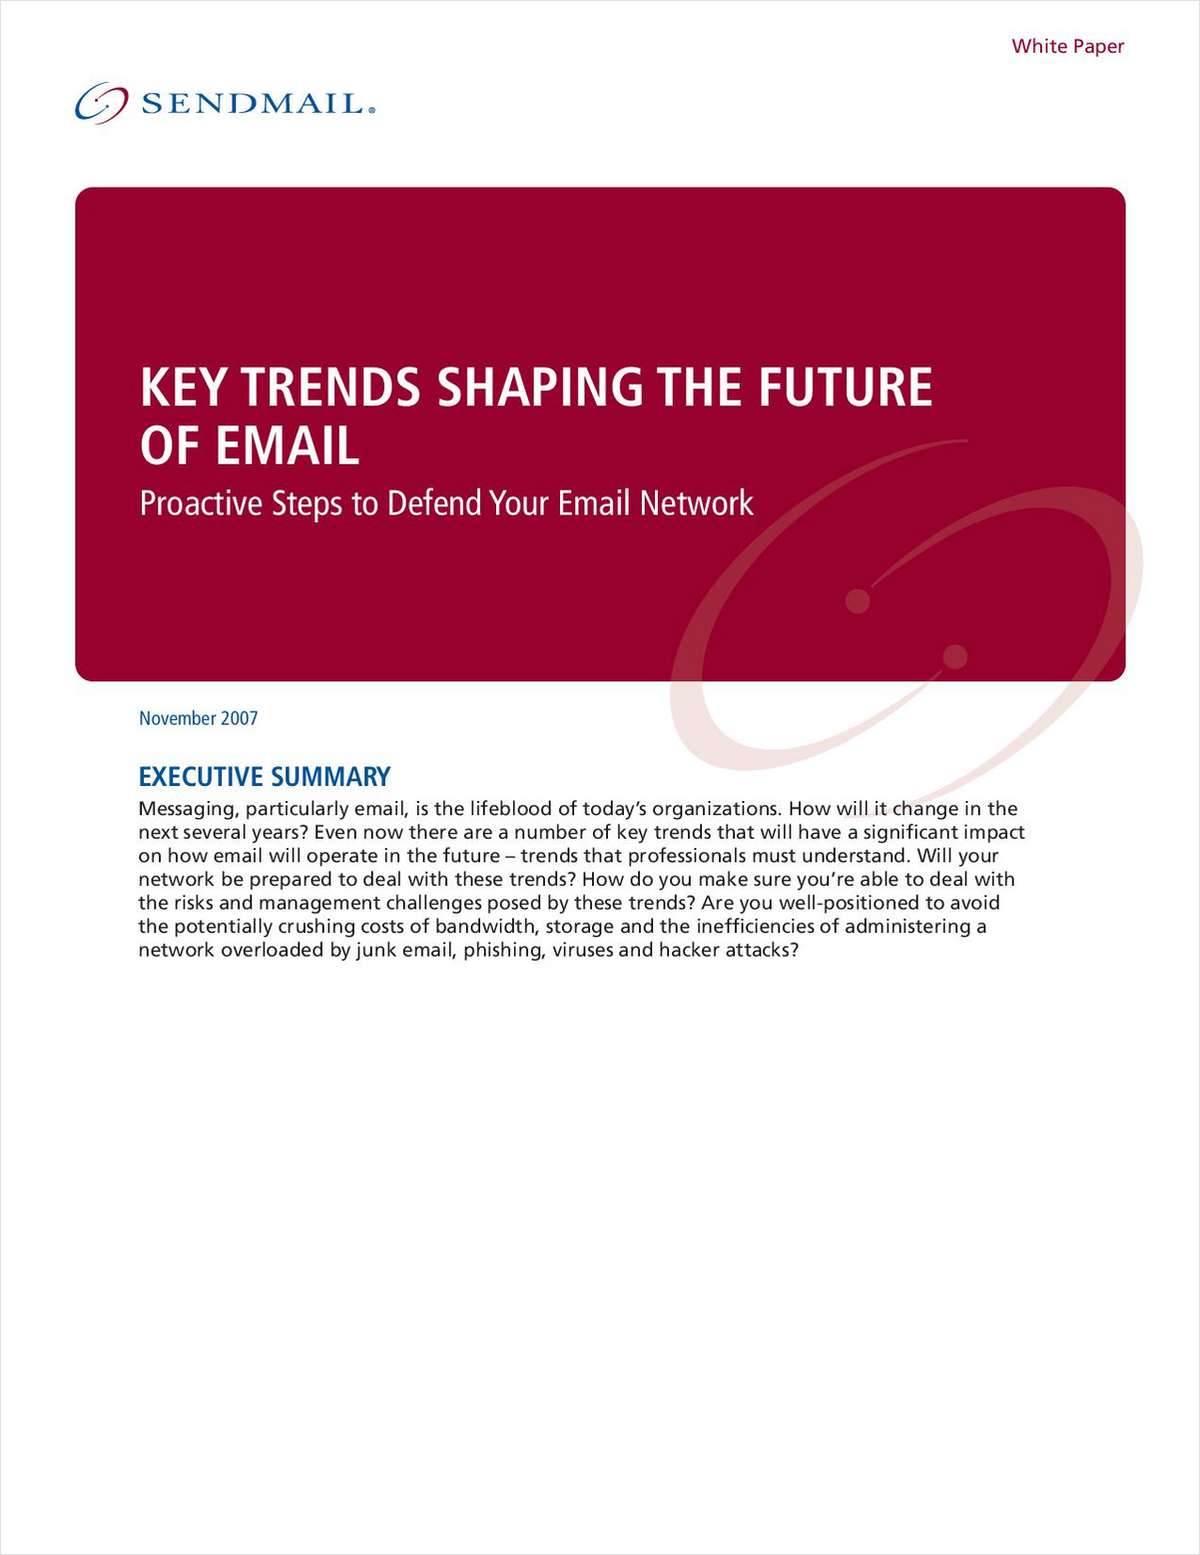 Key Trends Shaping the Future of Email